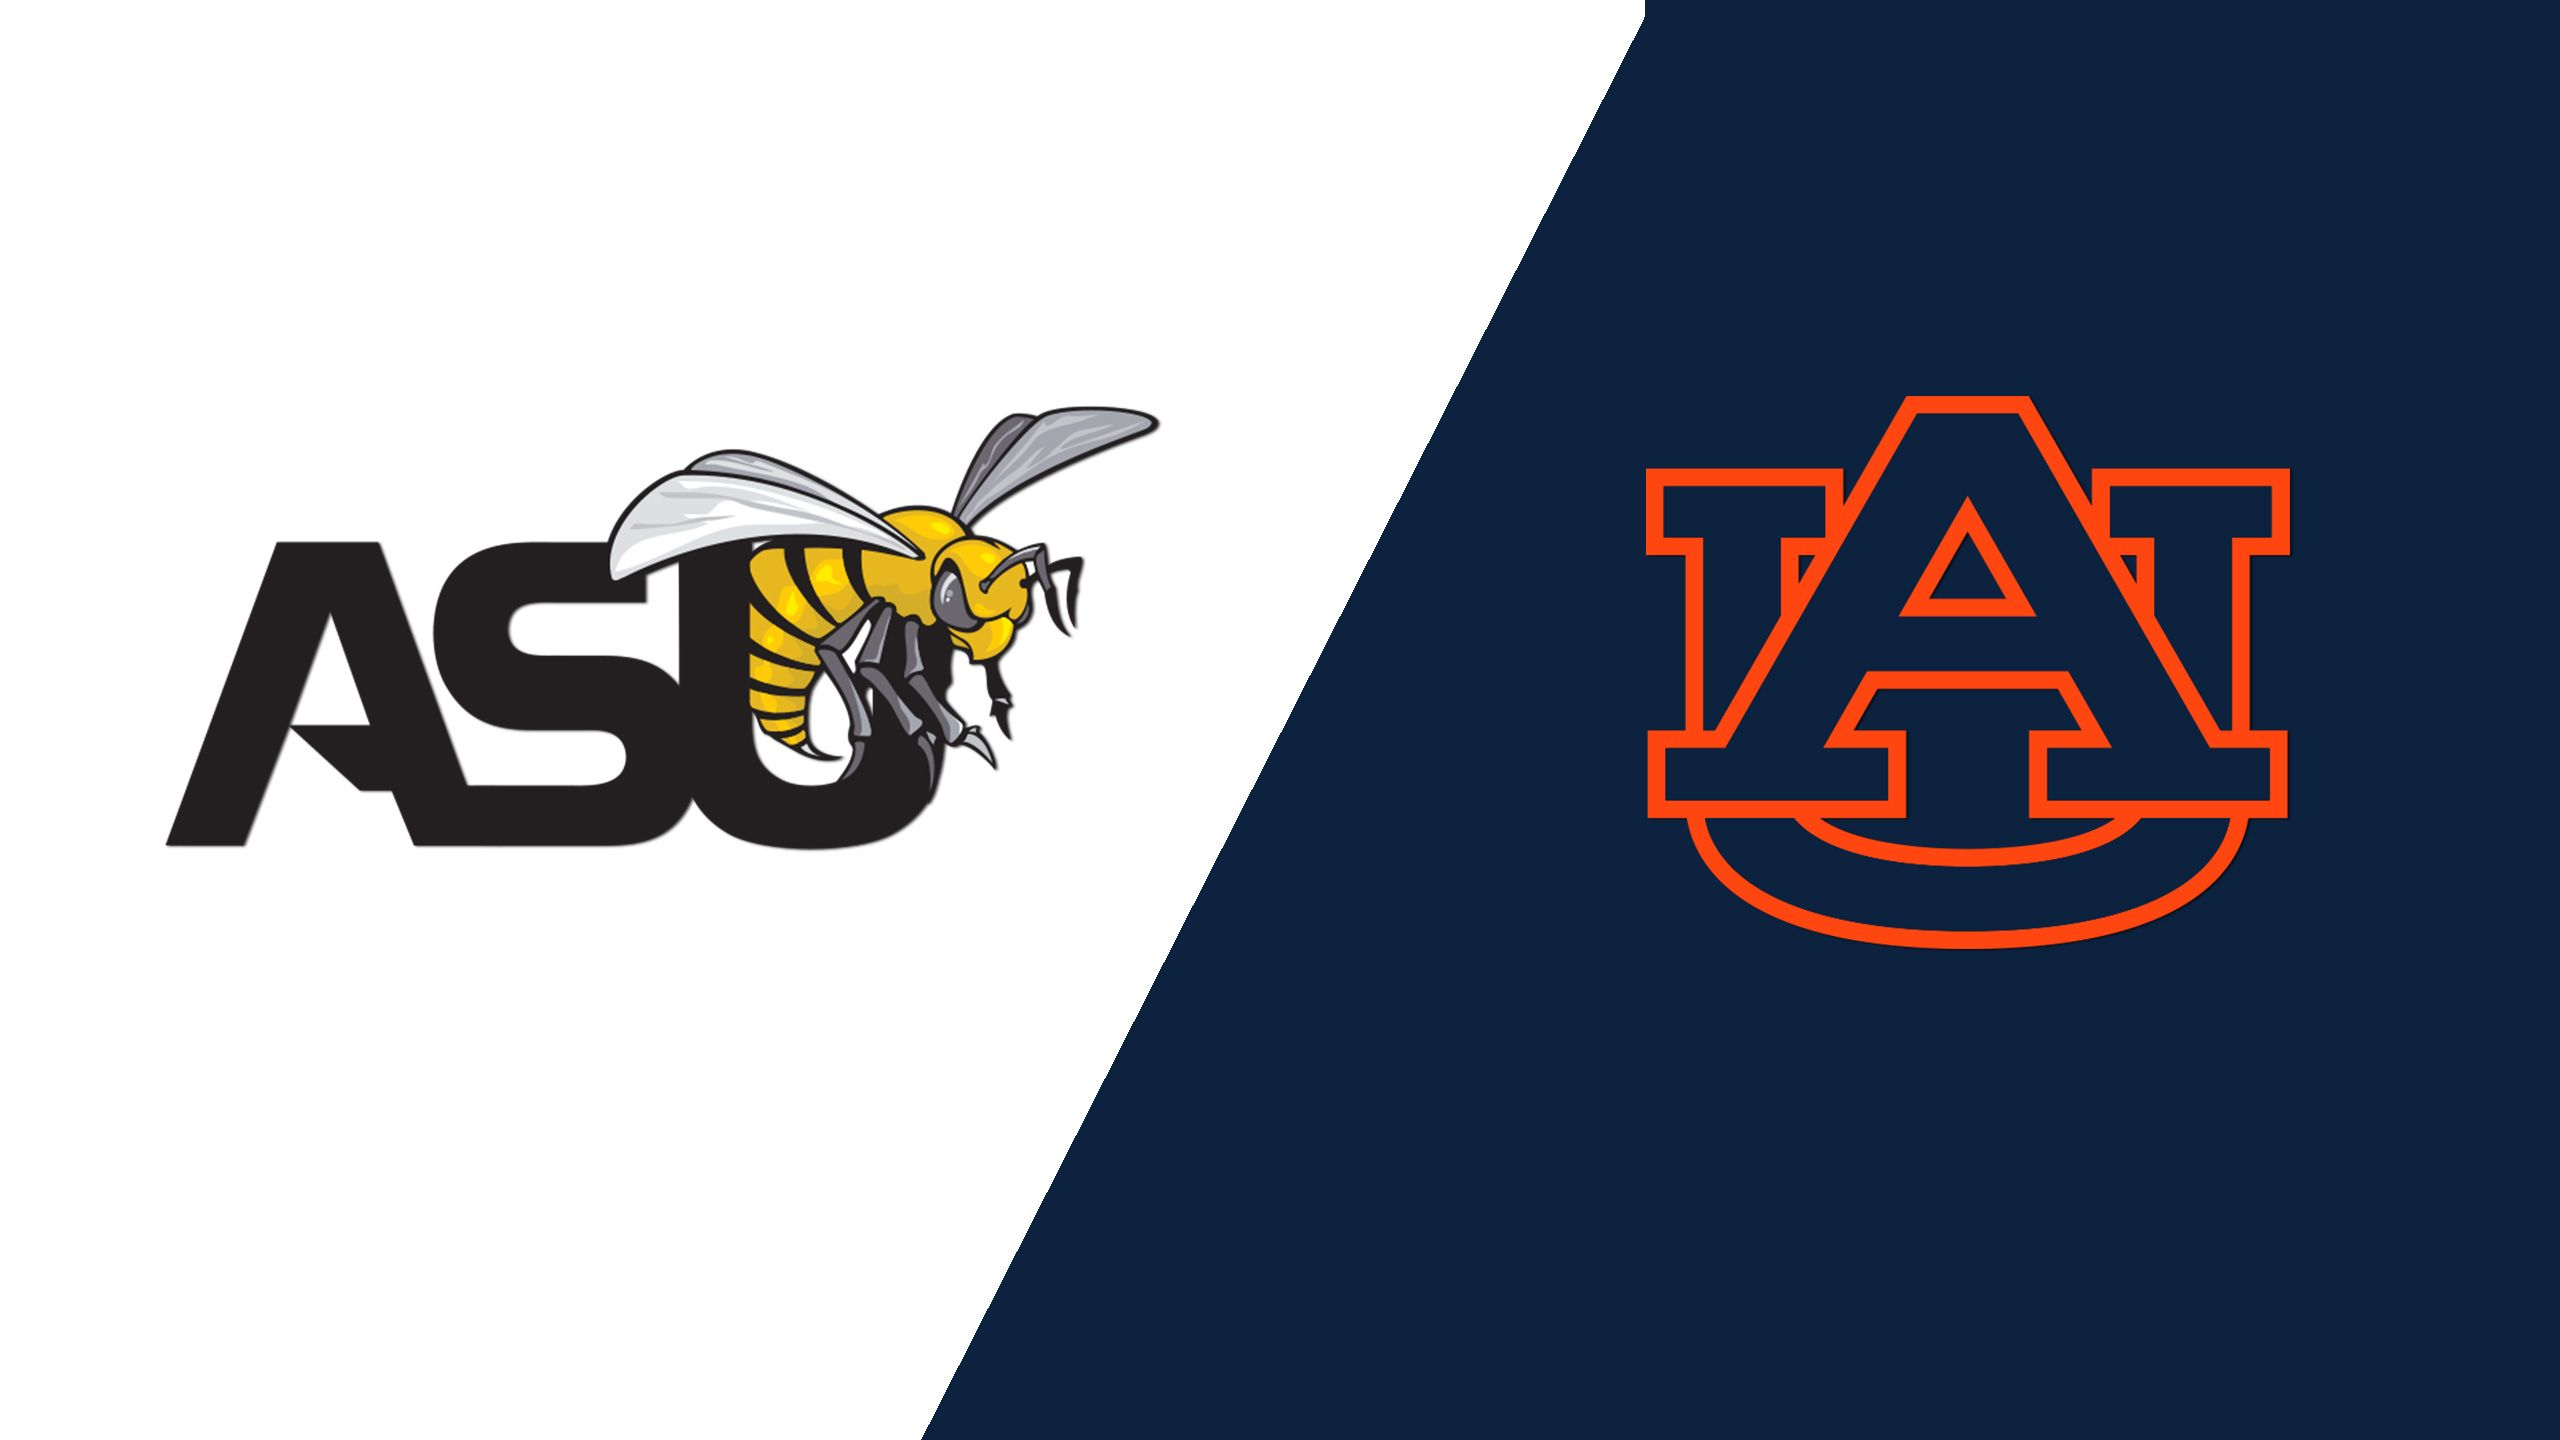 Alabama State vs. #13 Auburn (Softball)